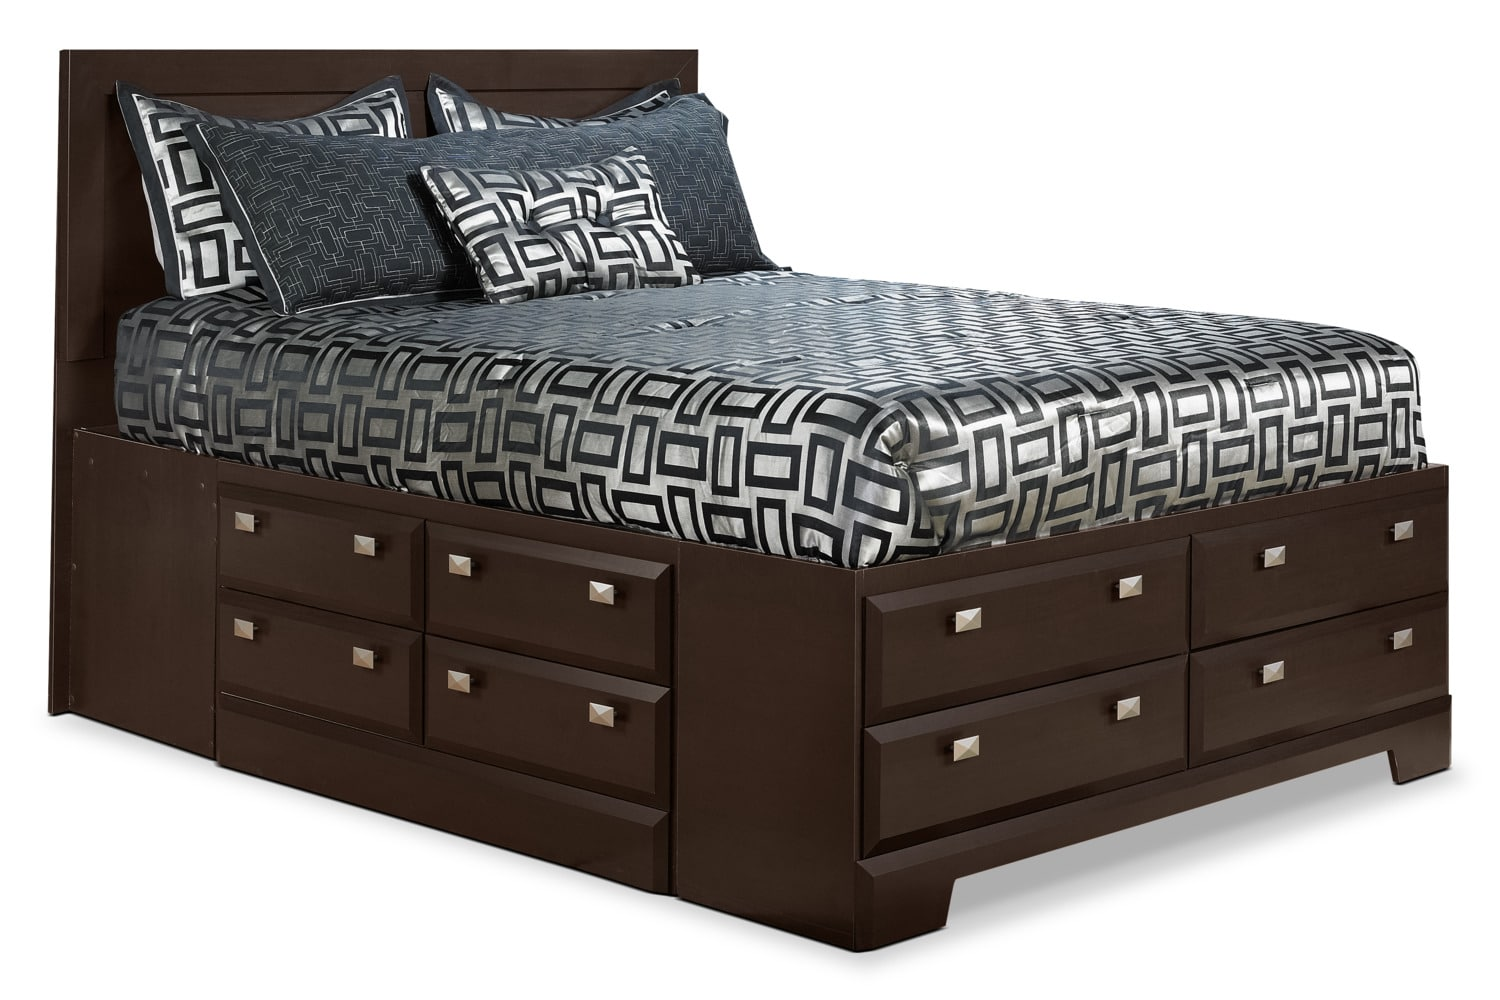 Bedroom Furniture - Yorkdale Full Platform Bed with Storage